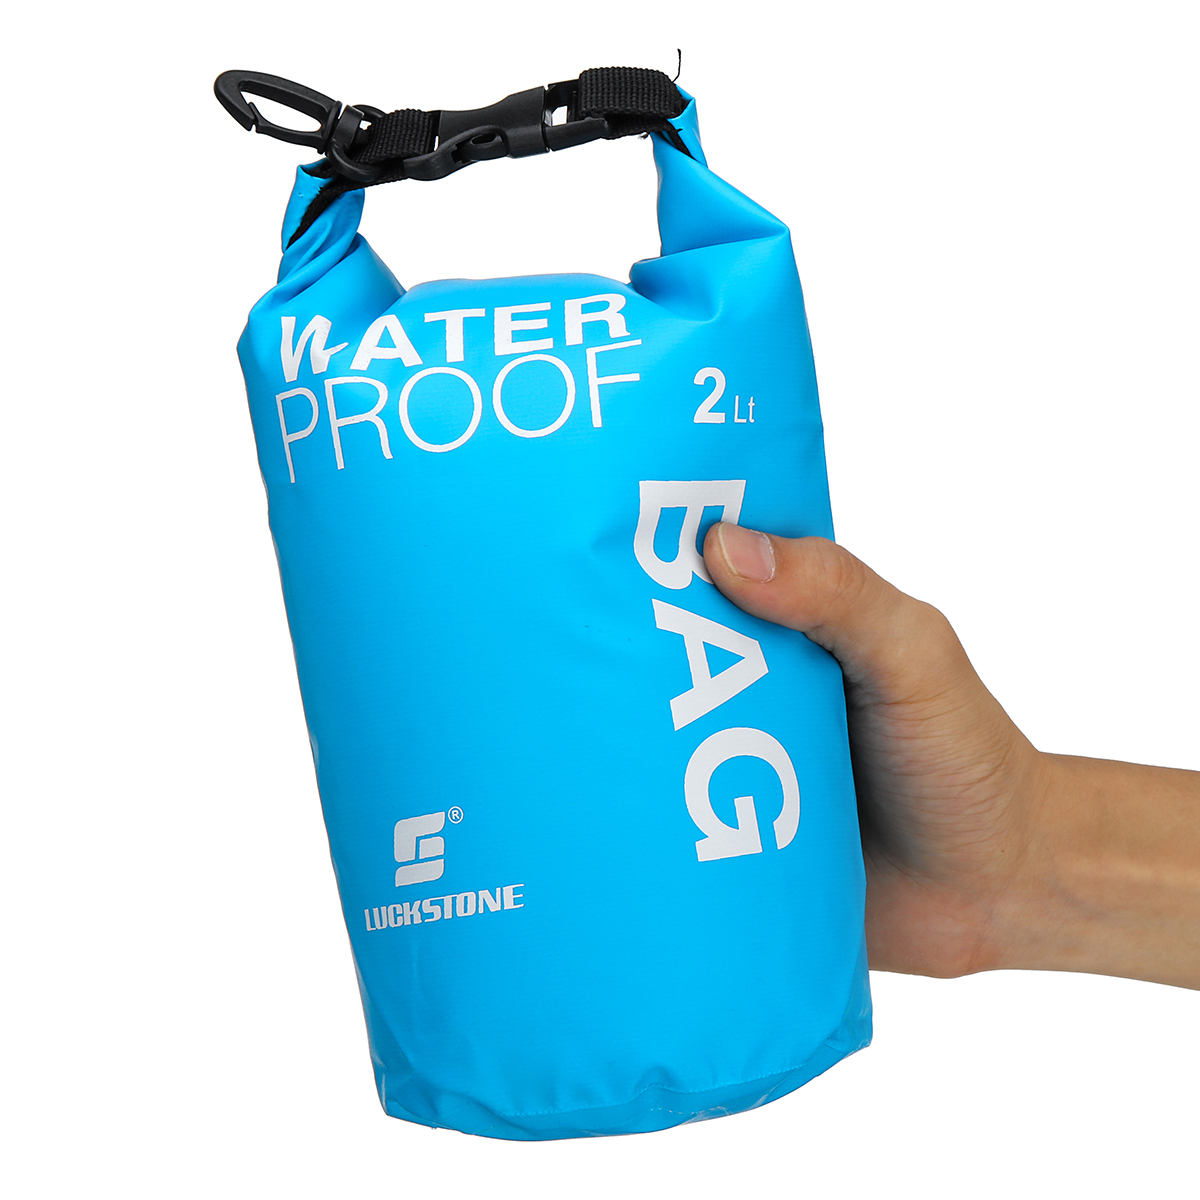 2L PVC Waterproof Dry Sack Bag Storage Backpack Pouch Camping Swimming Outdoor Mobile Phone Camera SLR Waterproof Bag